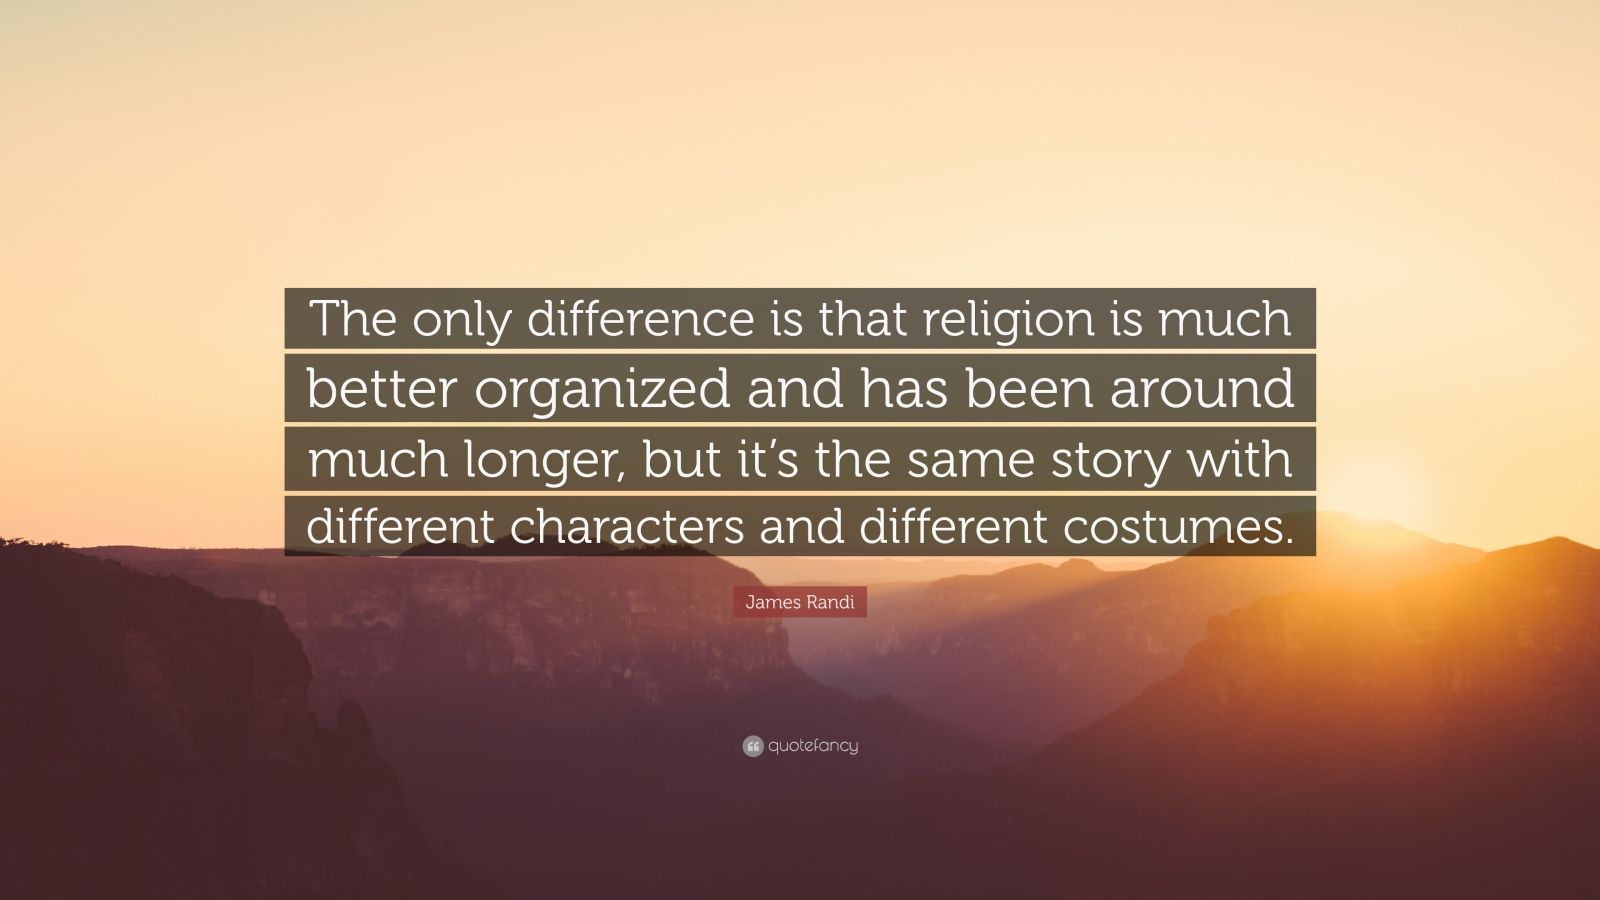 """James Randi Quote: """"The only difference is that religion is much better organized and has been around much longer, but it's the same story with different characters and different costumes."""""""